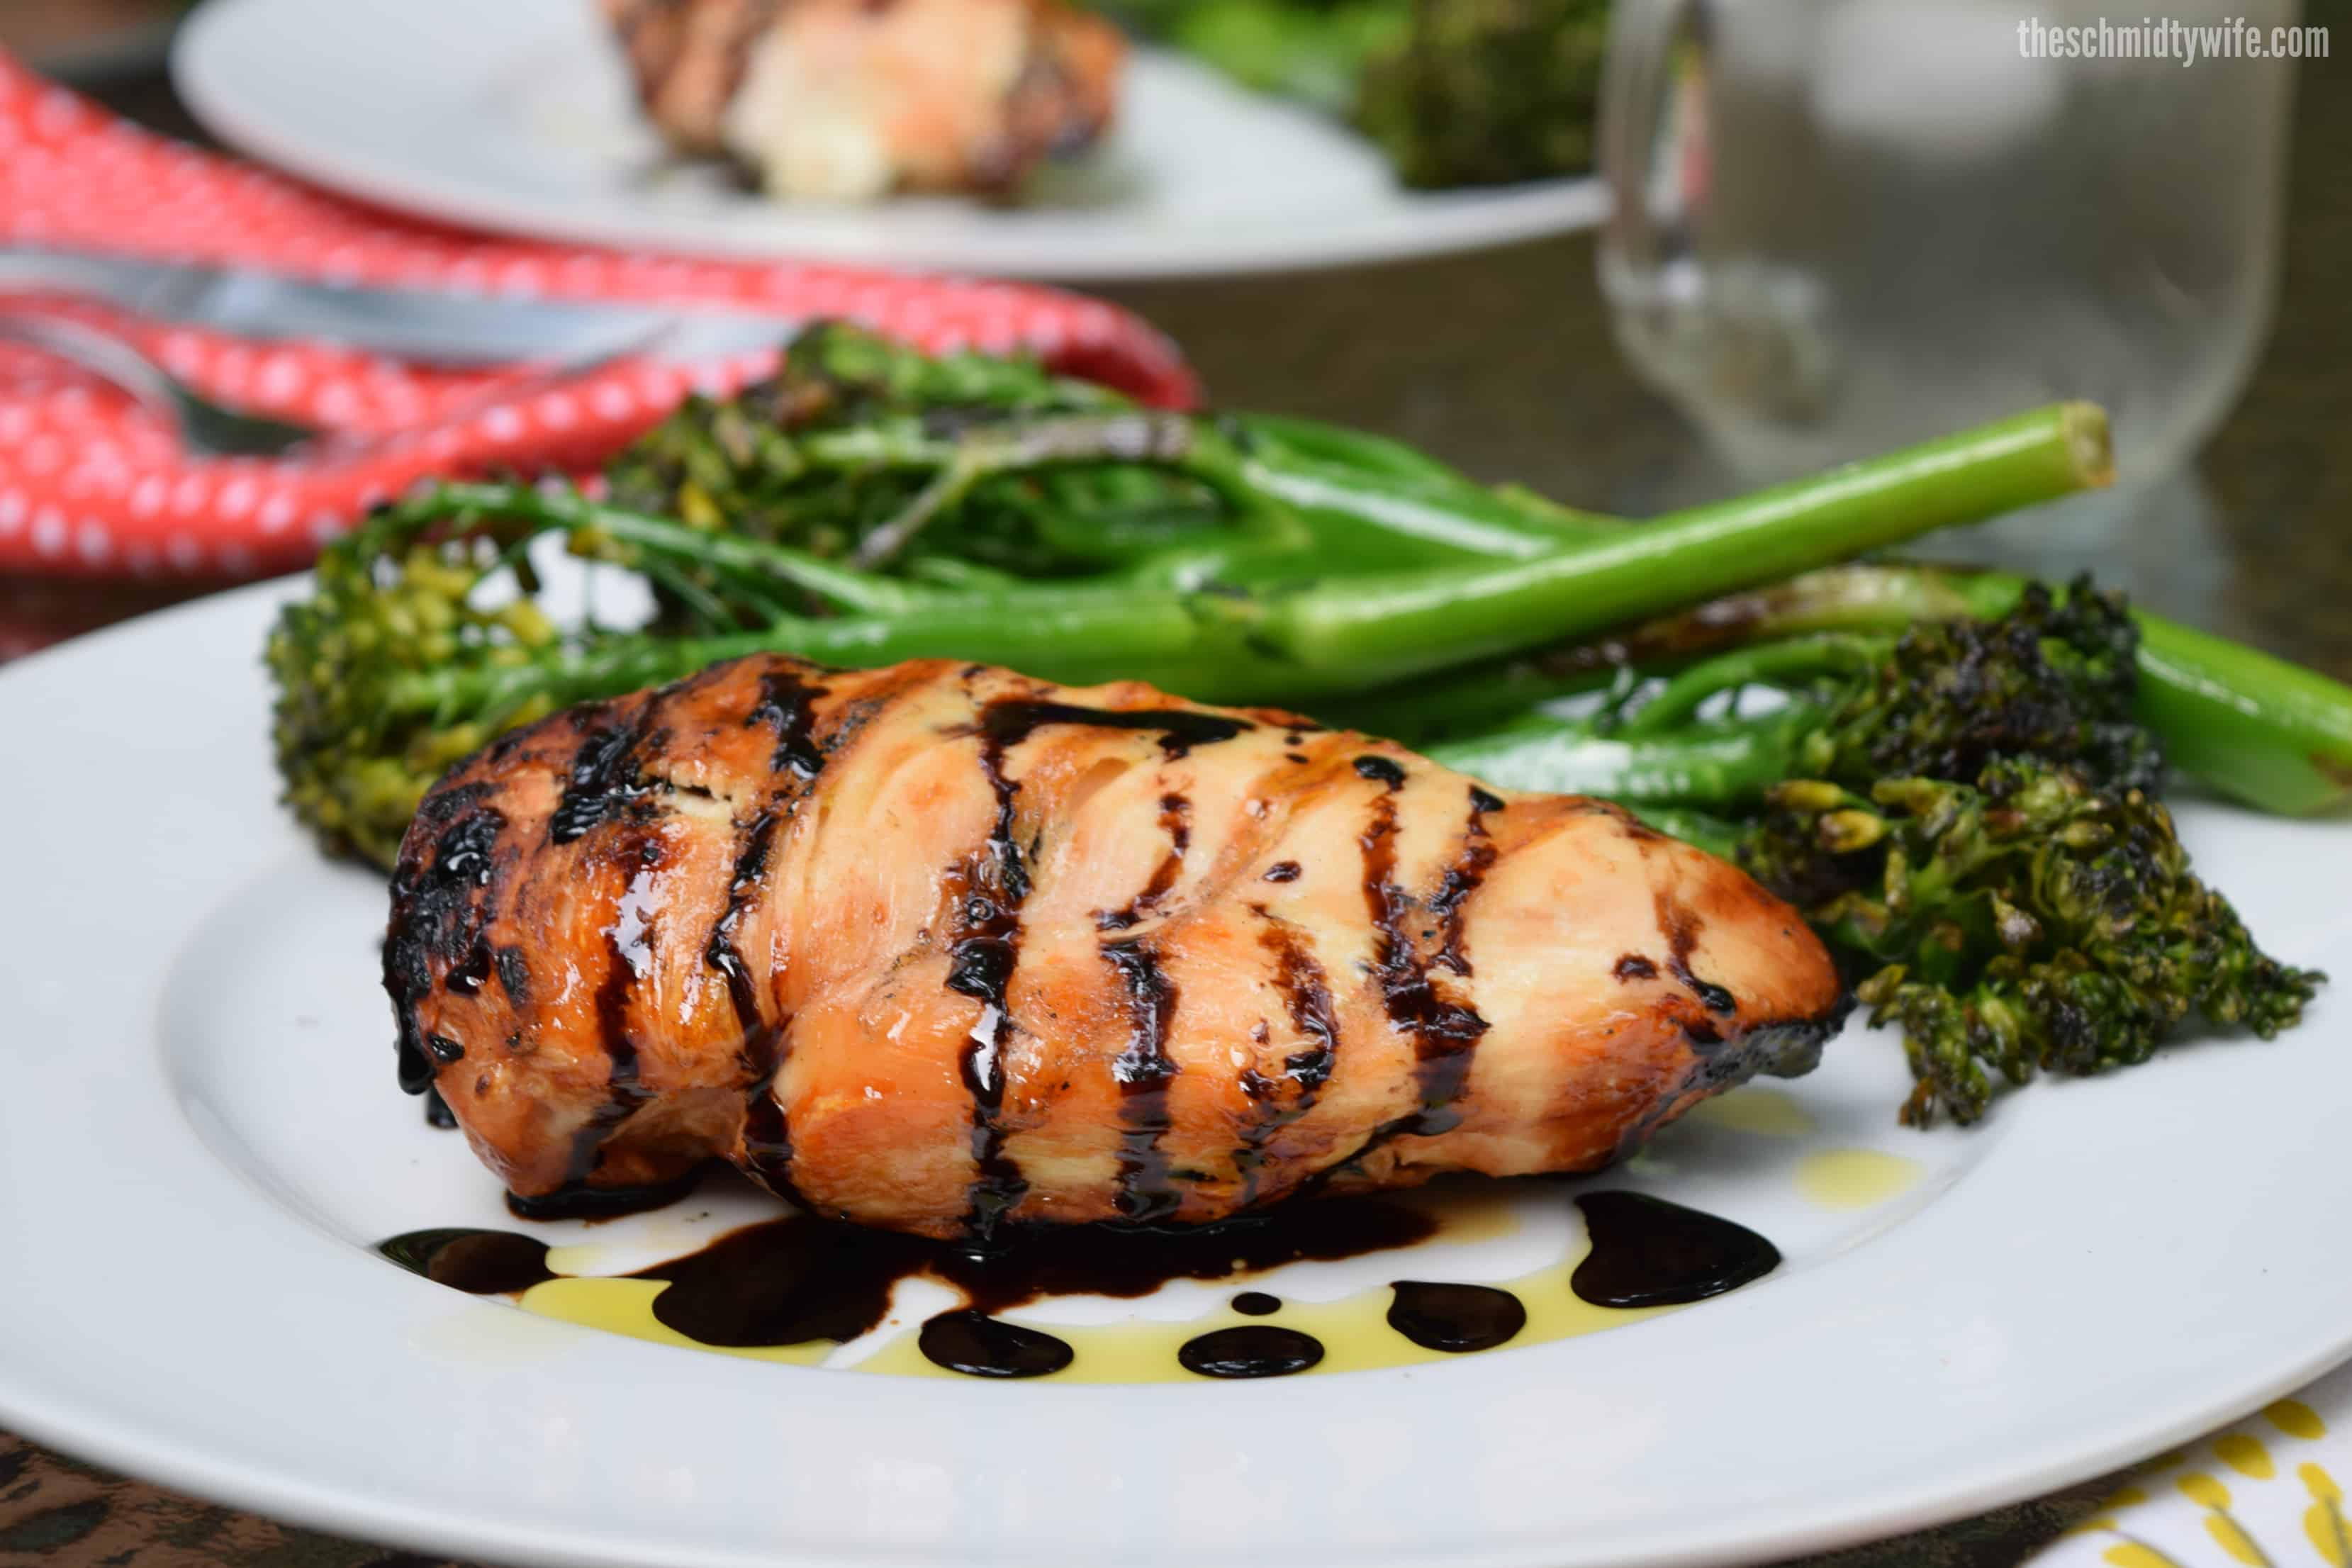 Stuffed Caprese Chicken grilled to perfection and sitting on a plate with broccolini